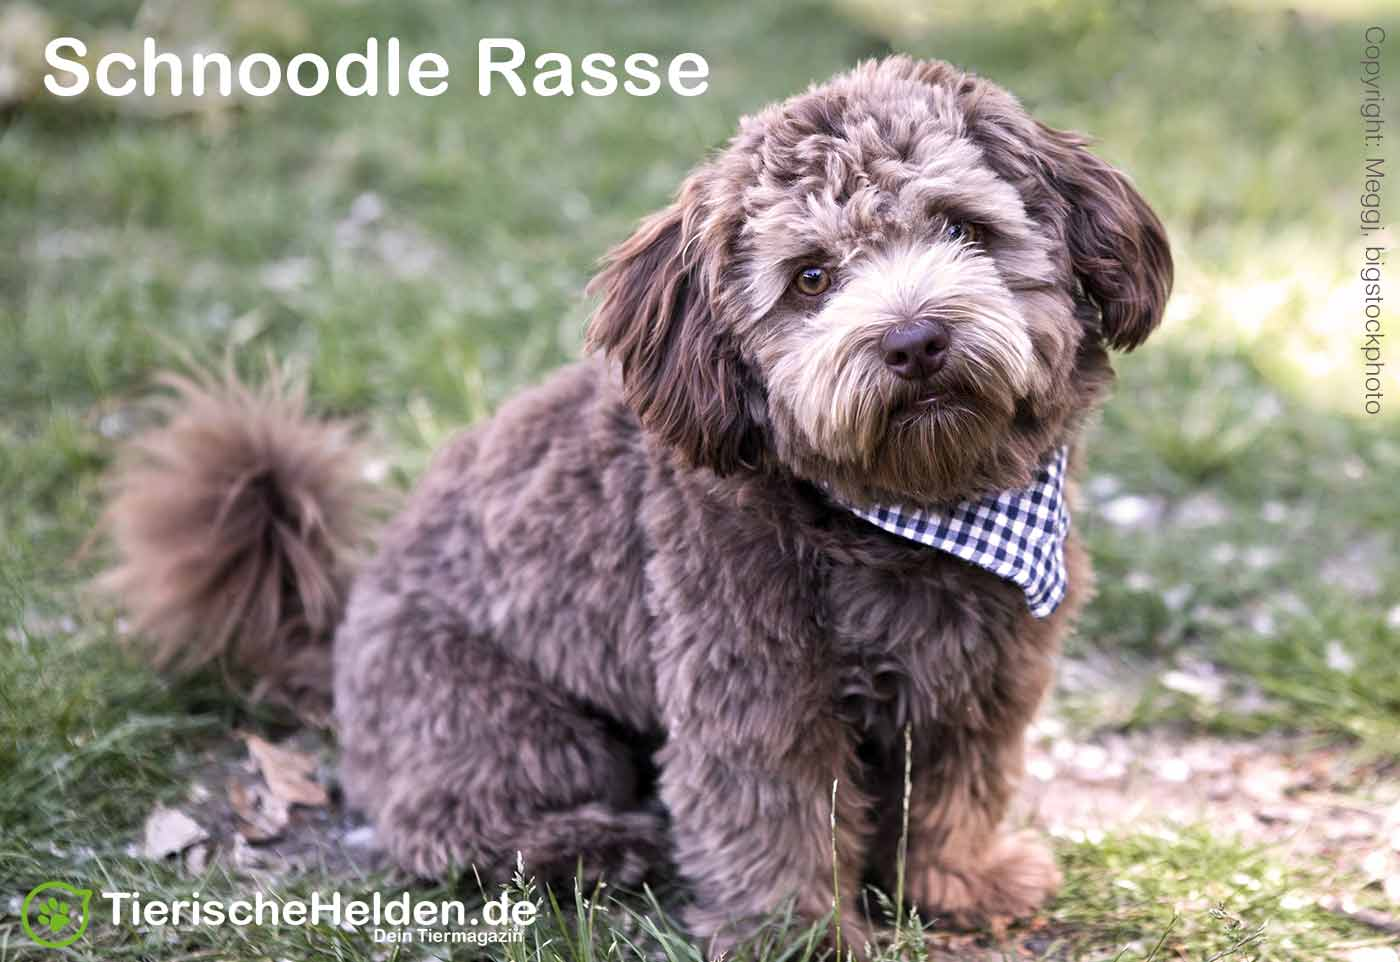 Schnoodle Rasse